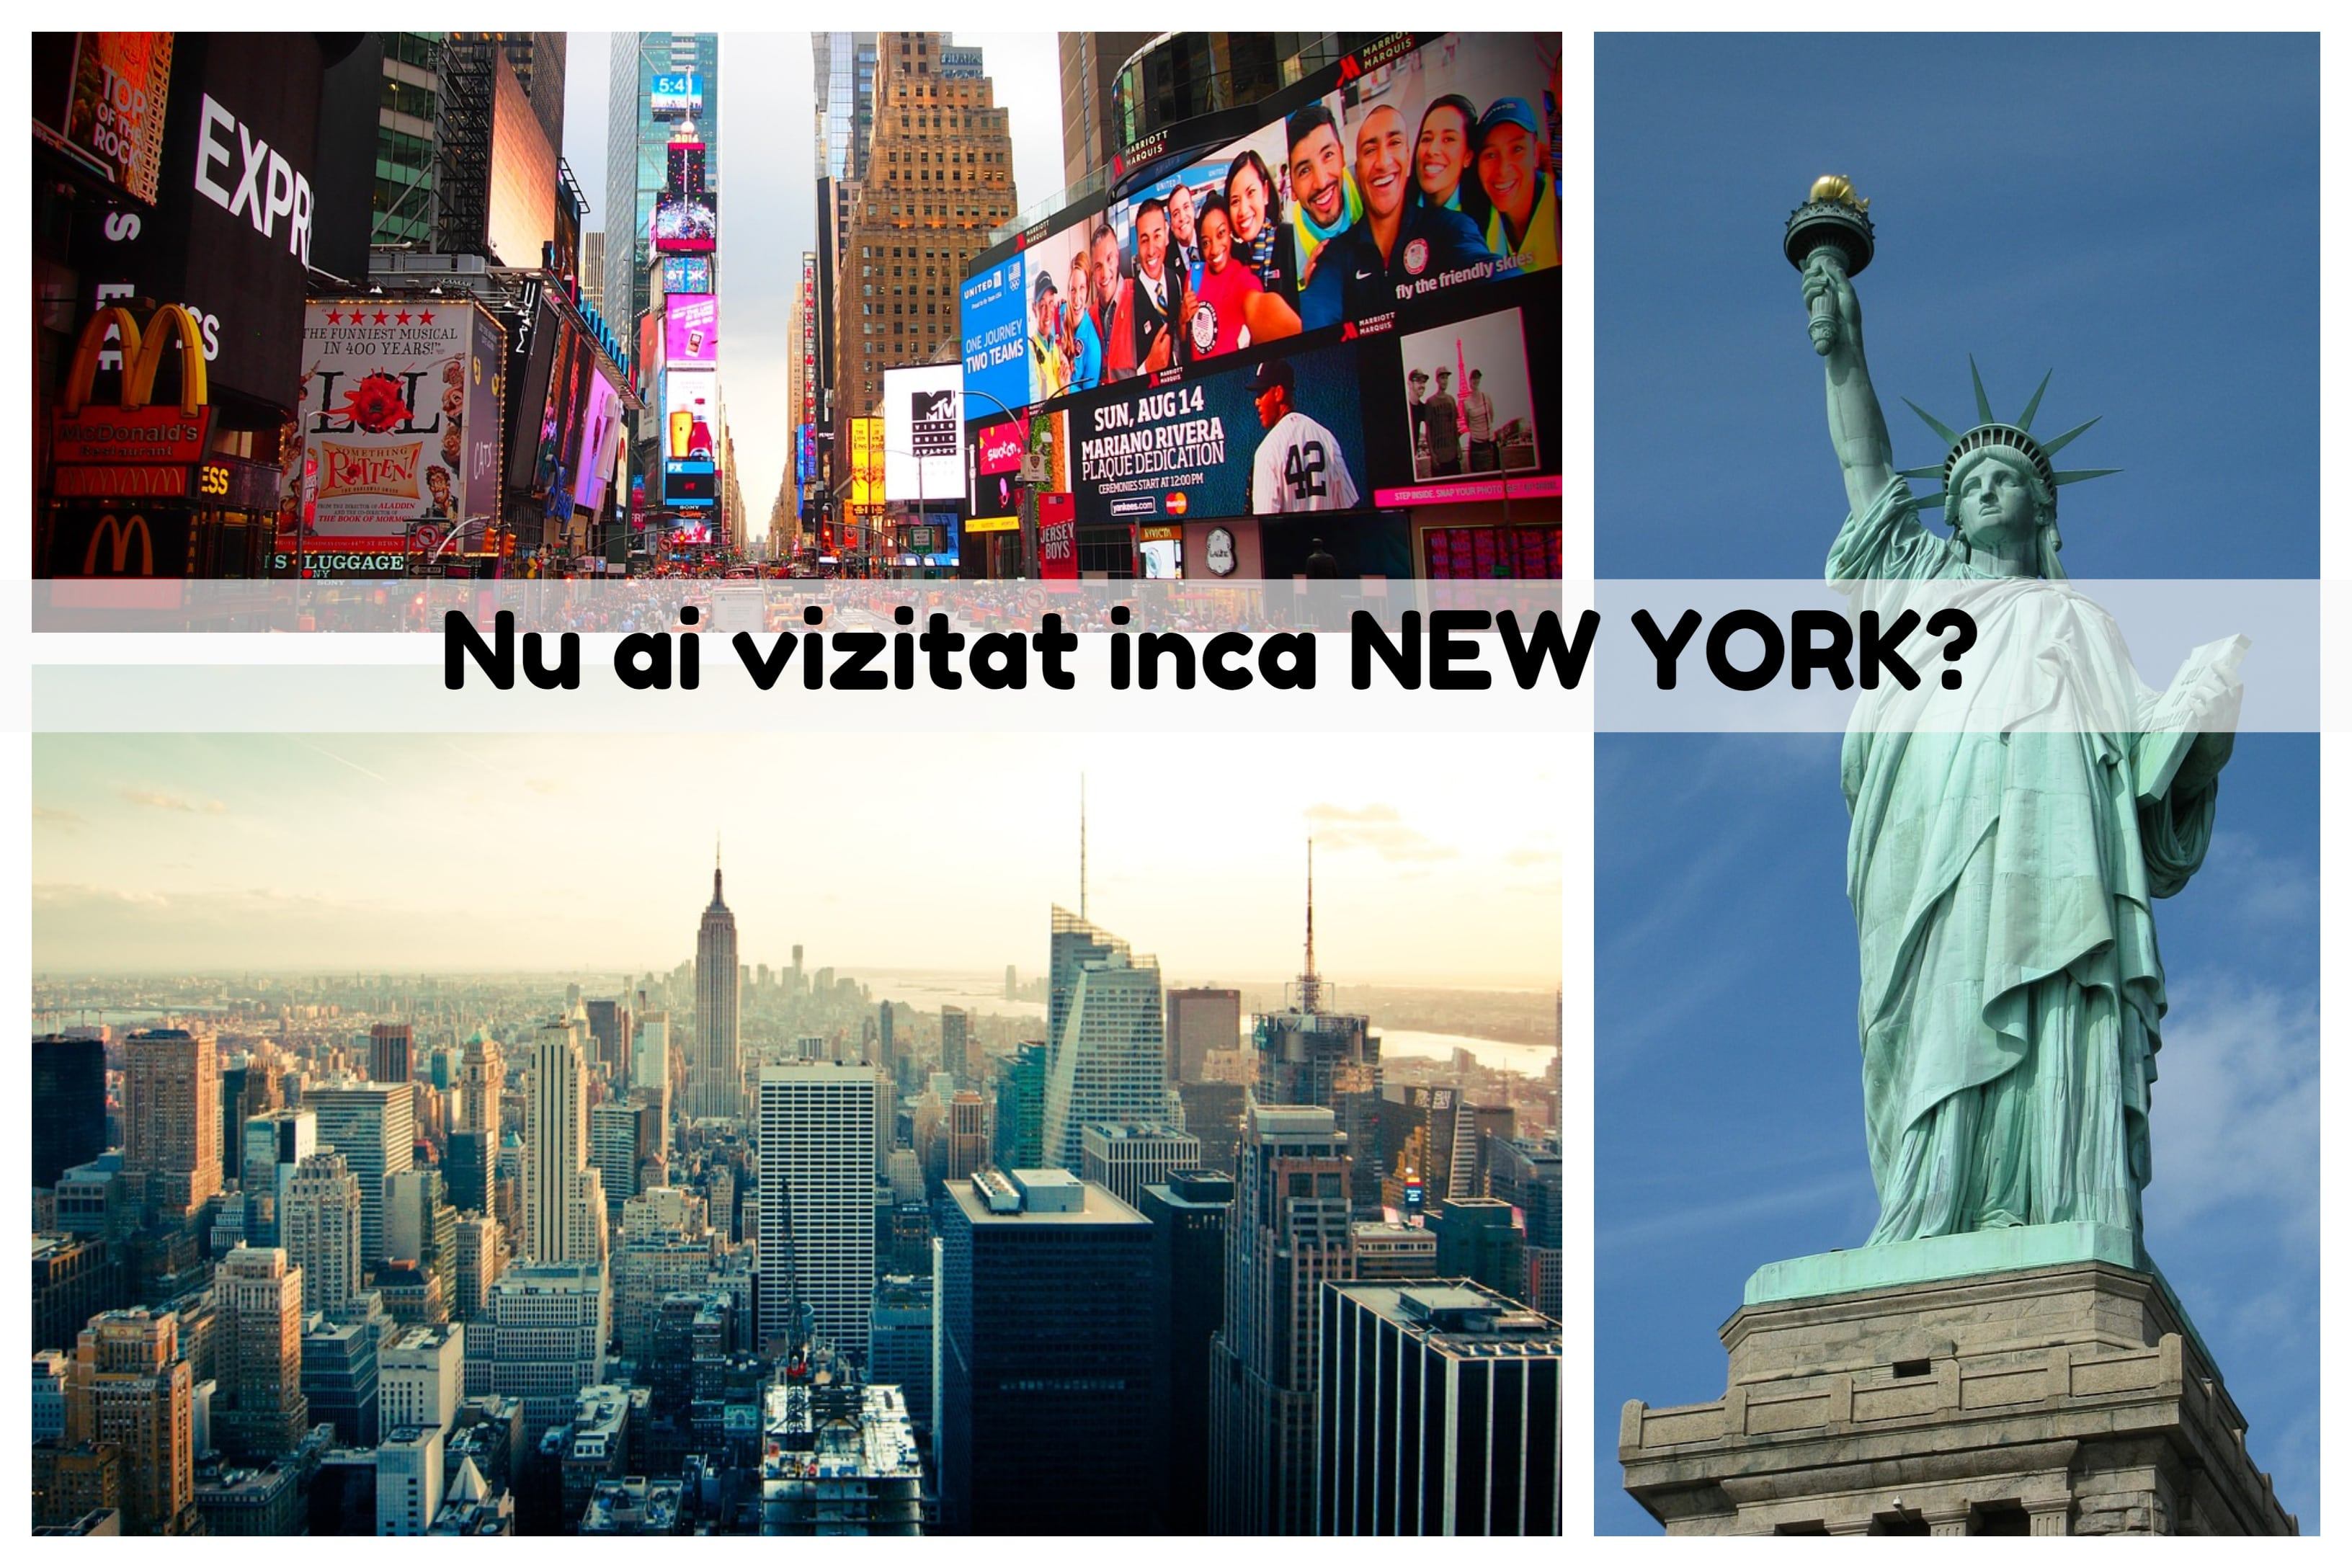 New York - oferta KLM de zbor translatlantic